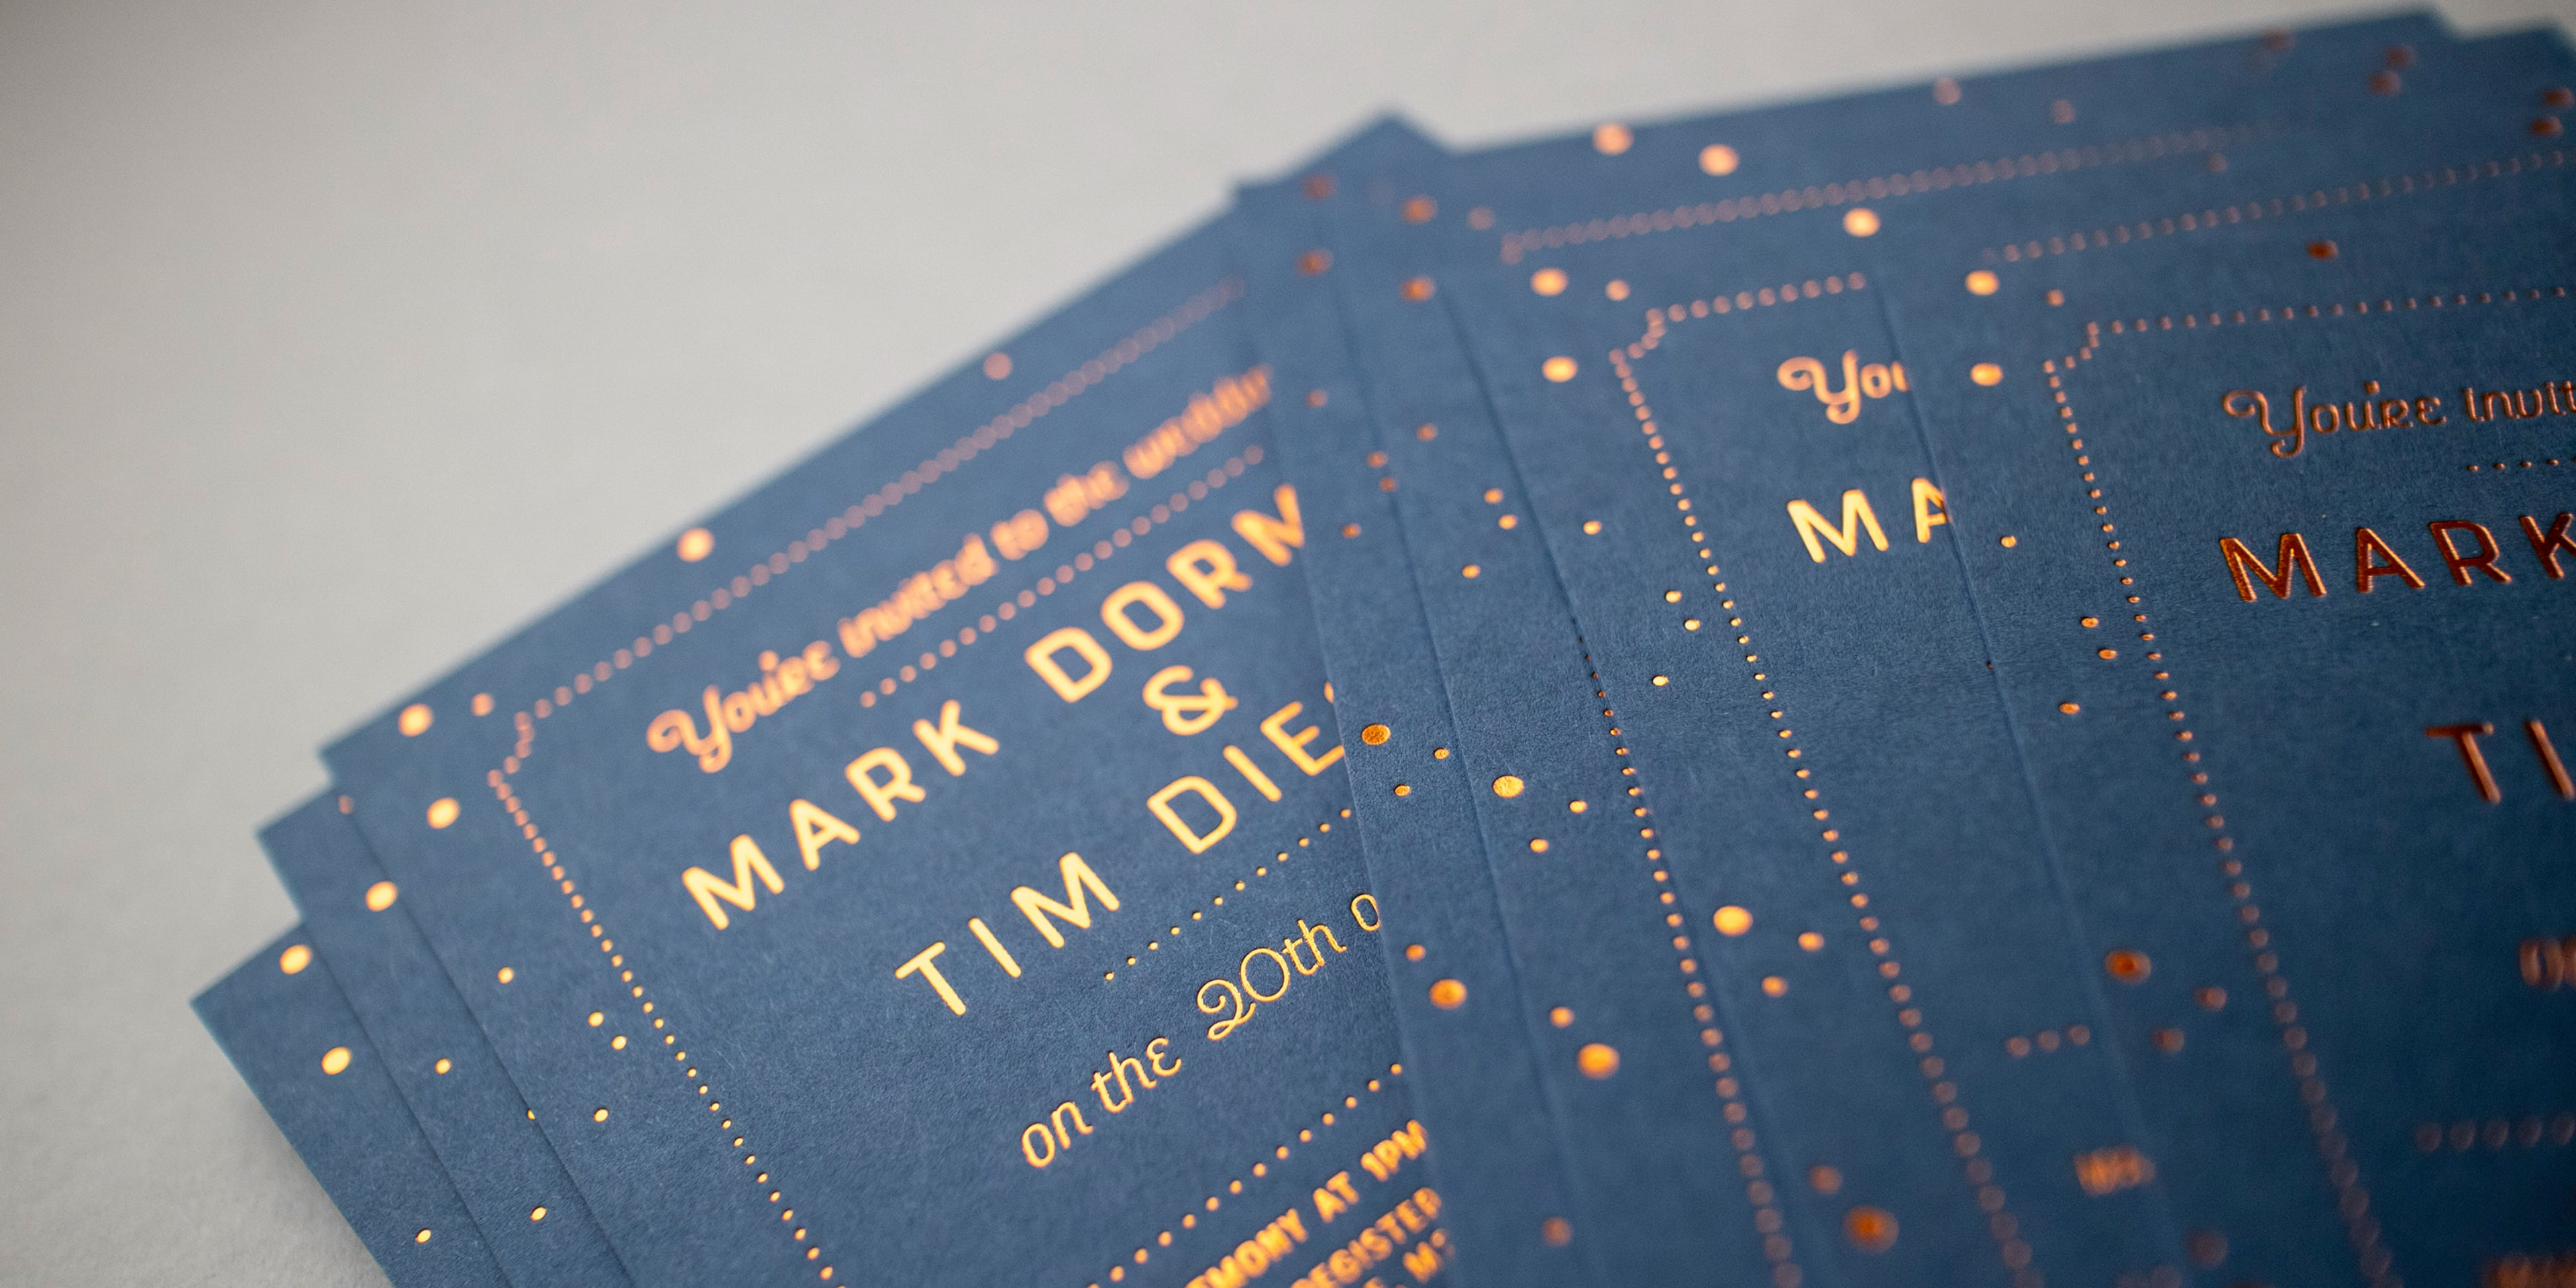 A close up photograph of Mark and Tim's wedding invites showing the detail of the copper foil pressed into the cobalt blue cards. The style is slightly vintage, with thin condensed sans serif type, surrounded by a border of simple star patterns.